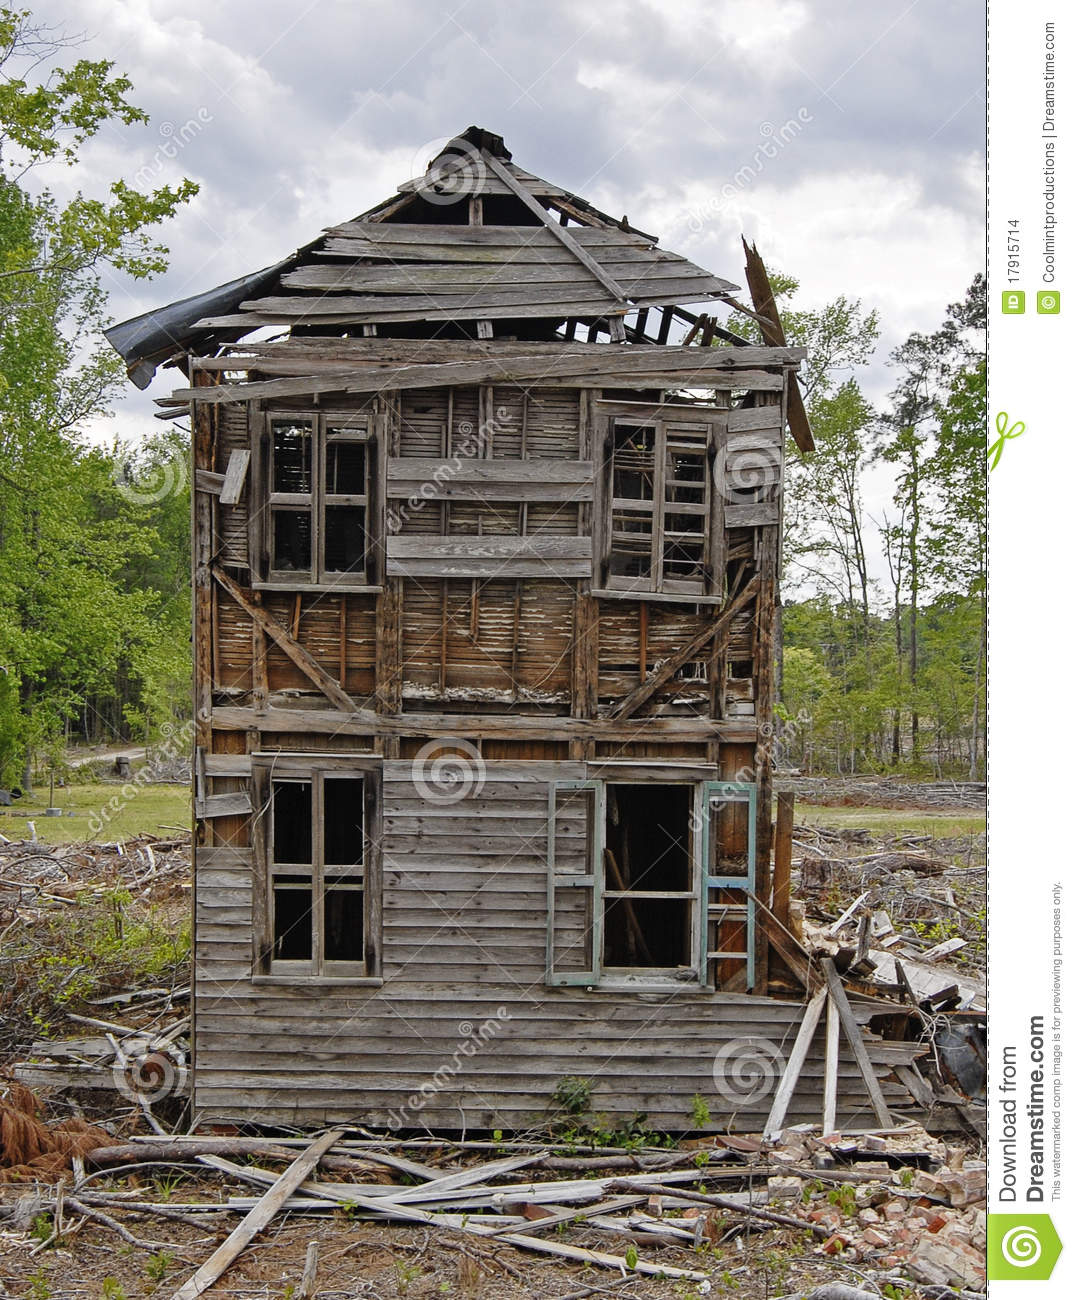 Abandoned old house in the woods clipart.